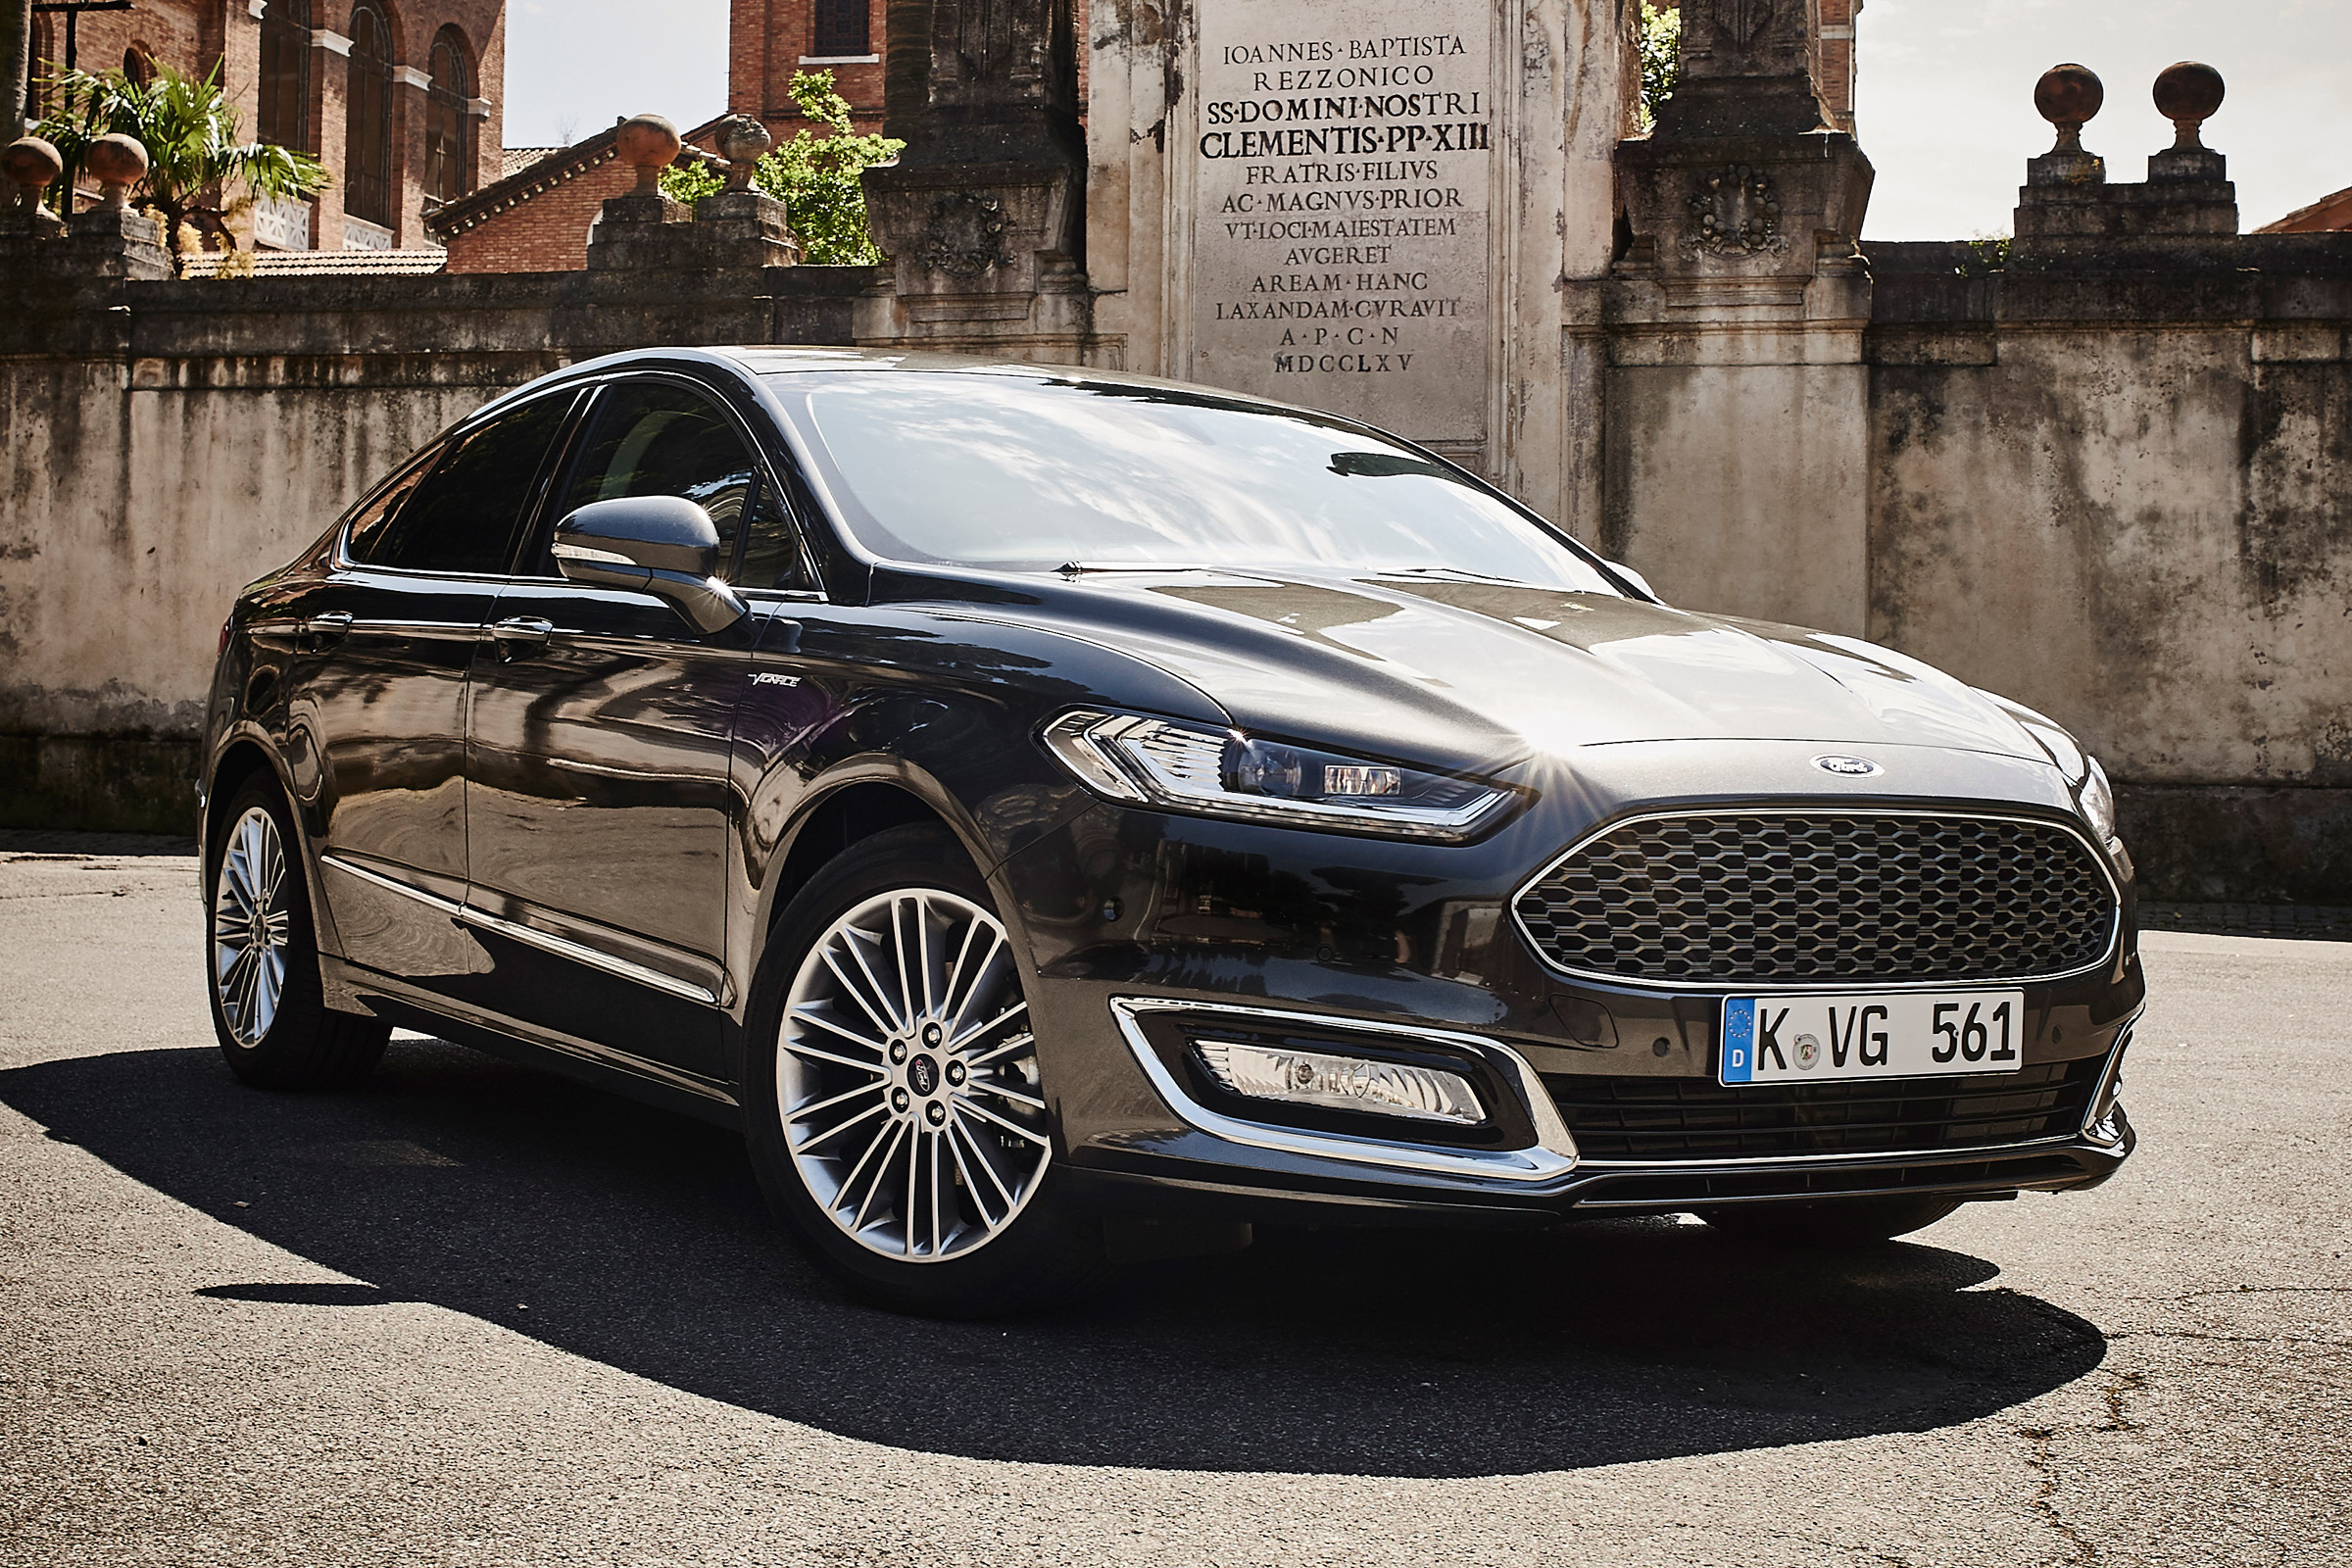 Ford S Upmarket Vignale Brand Very Important For Company S